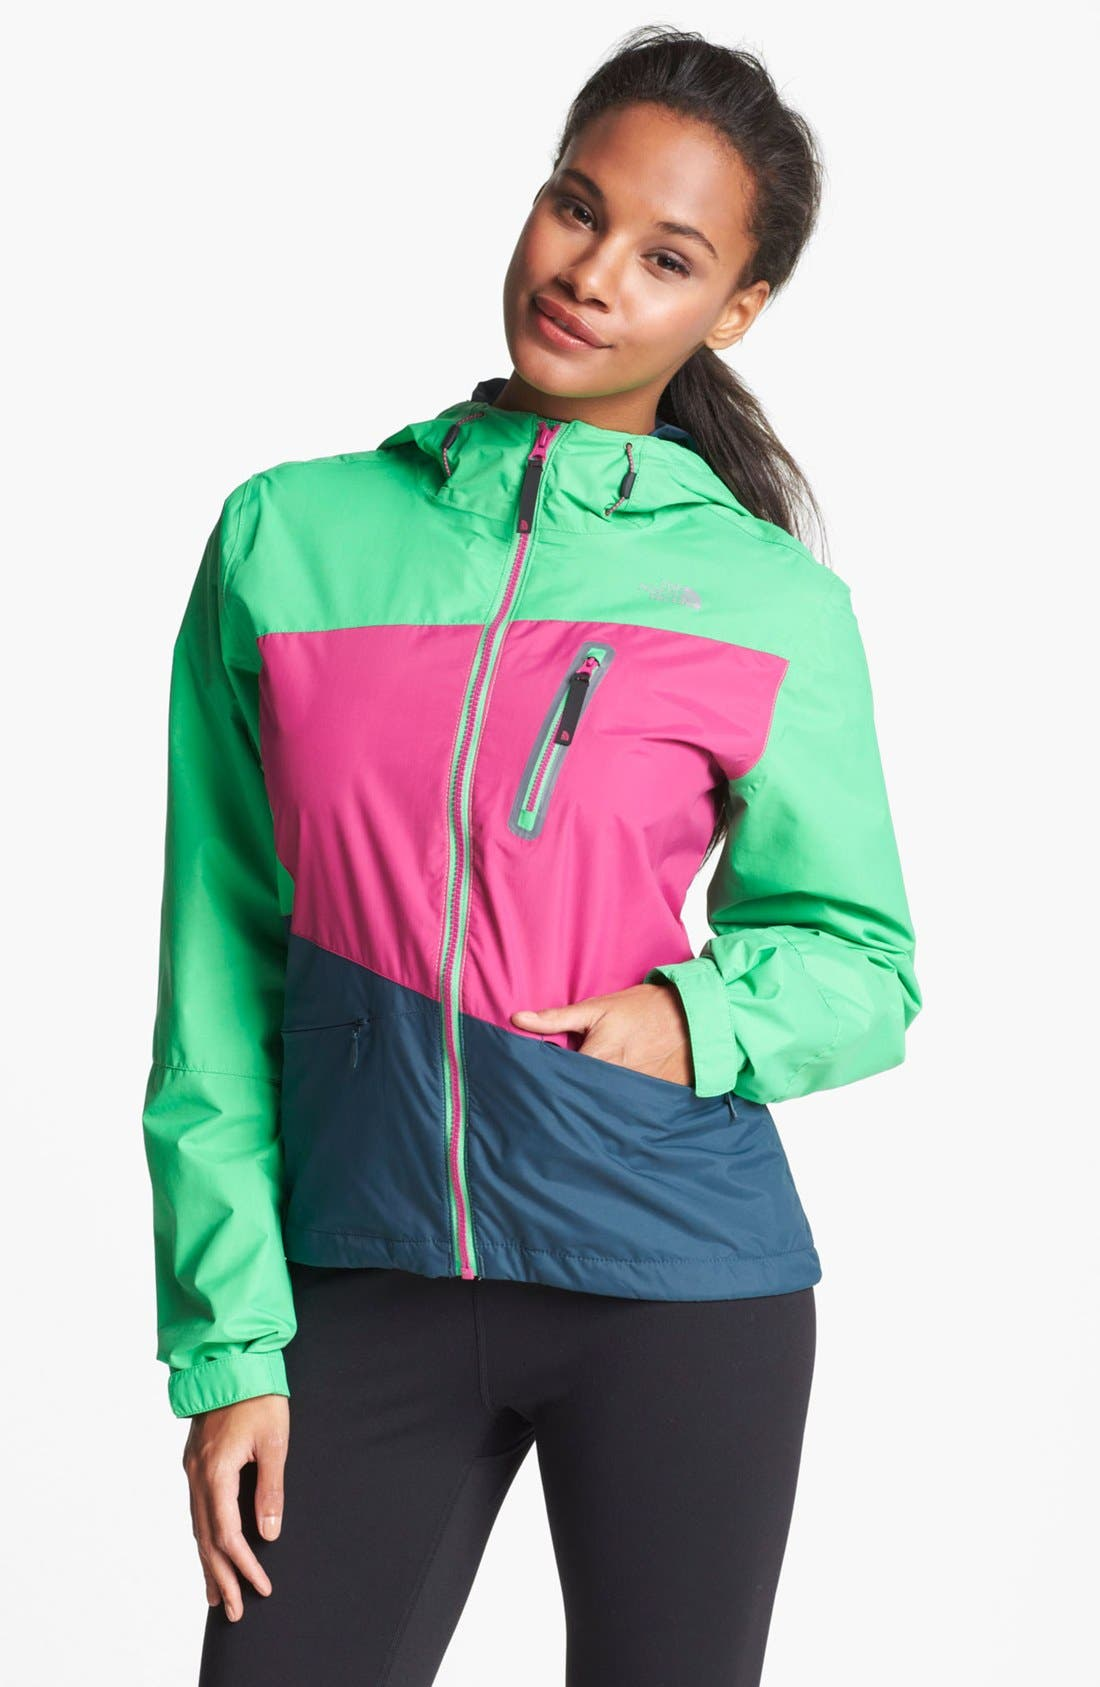 Alternate Image 1 Selected - The North Face 'Woodchip' Mountain Bike Jacket